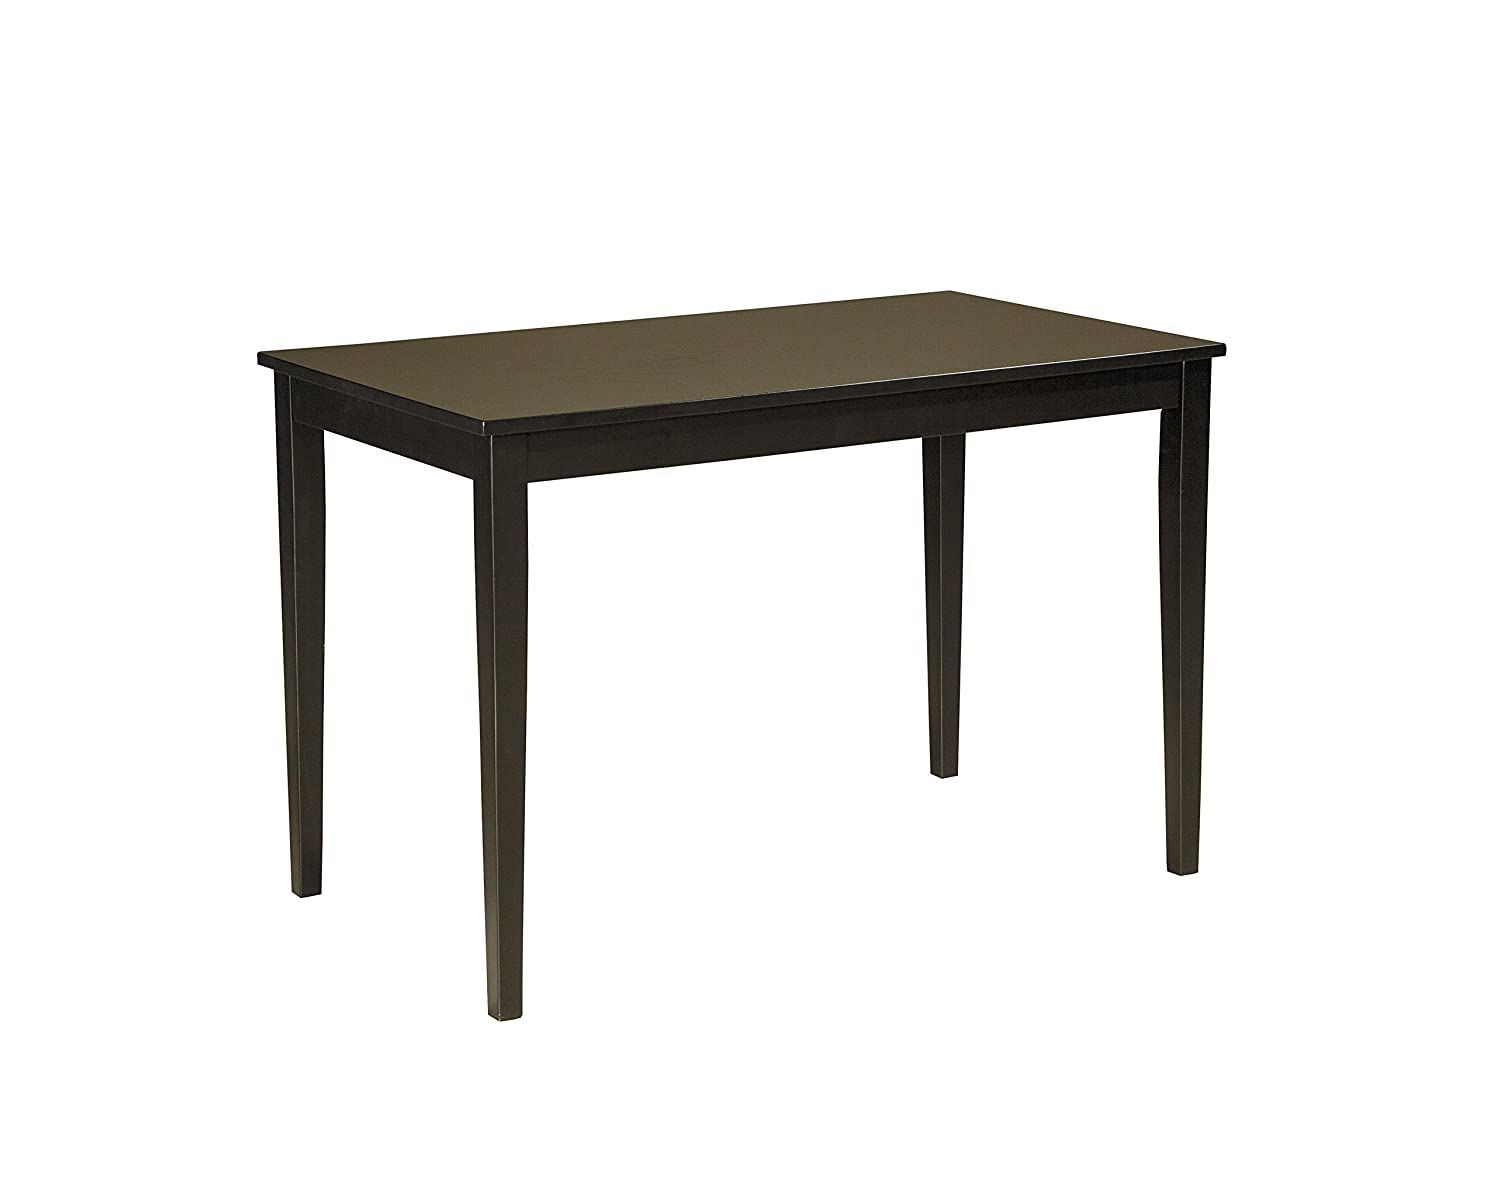 amazoncom ashley furniture signature design  kimonte dining room table rectangular  dark brown kitchen  dining. amazoncom ashley furniture signature design  kimonte dining